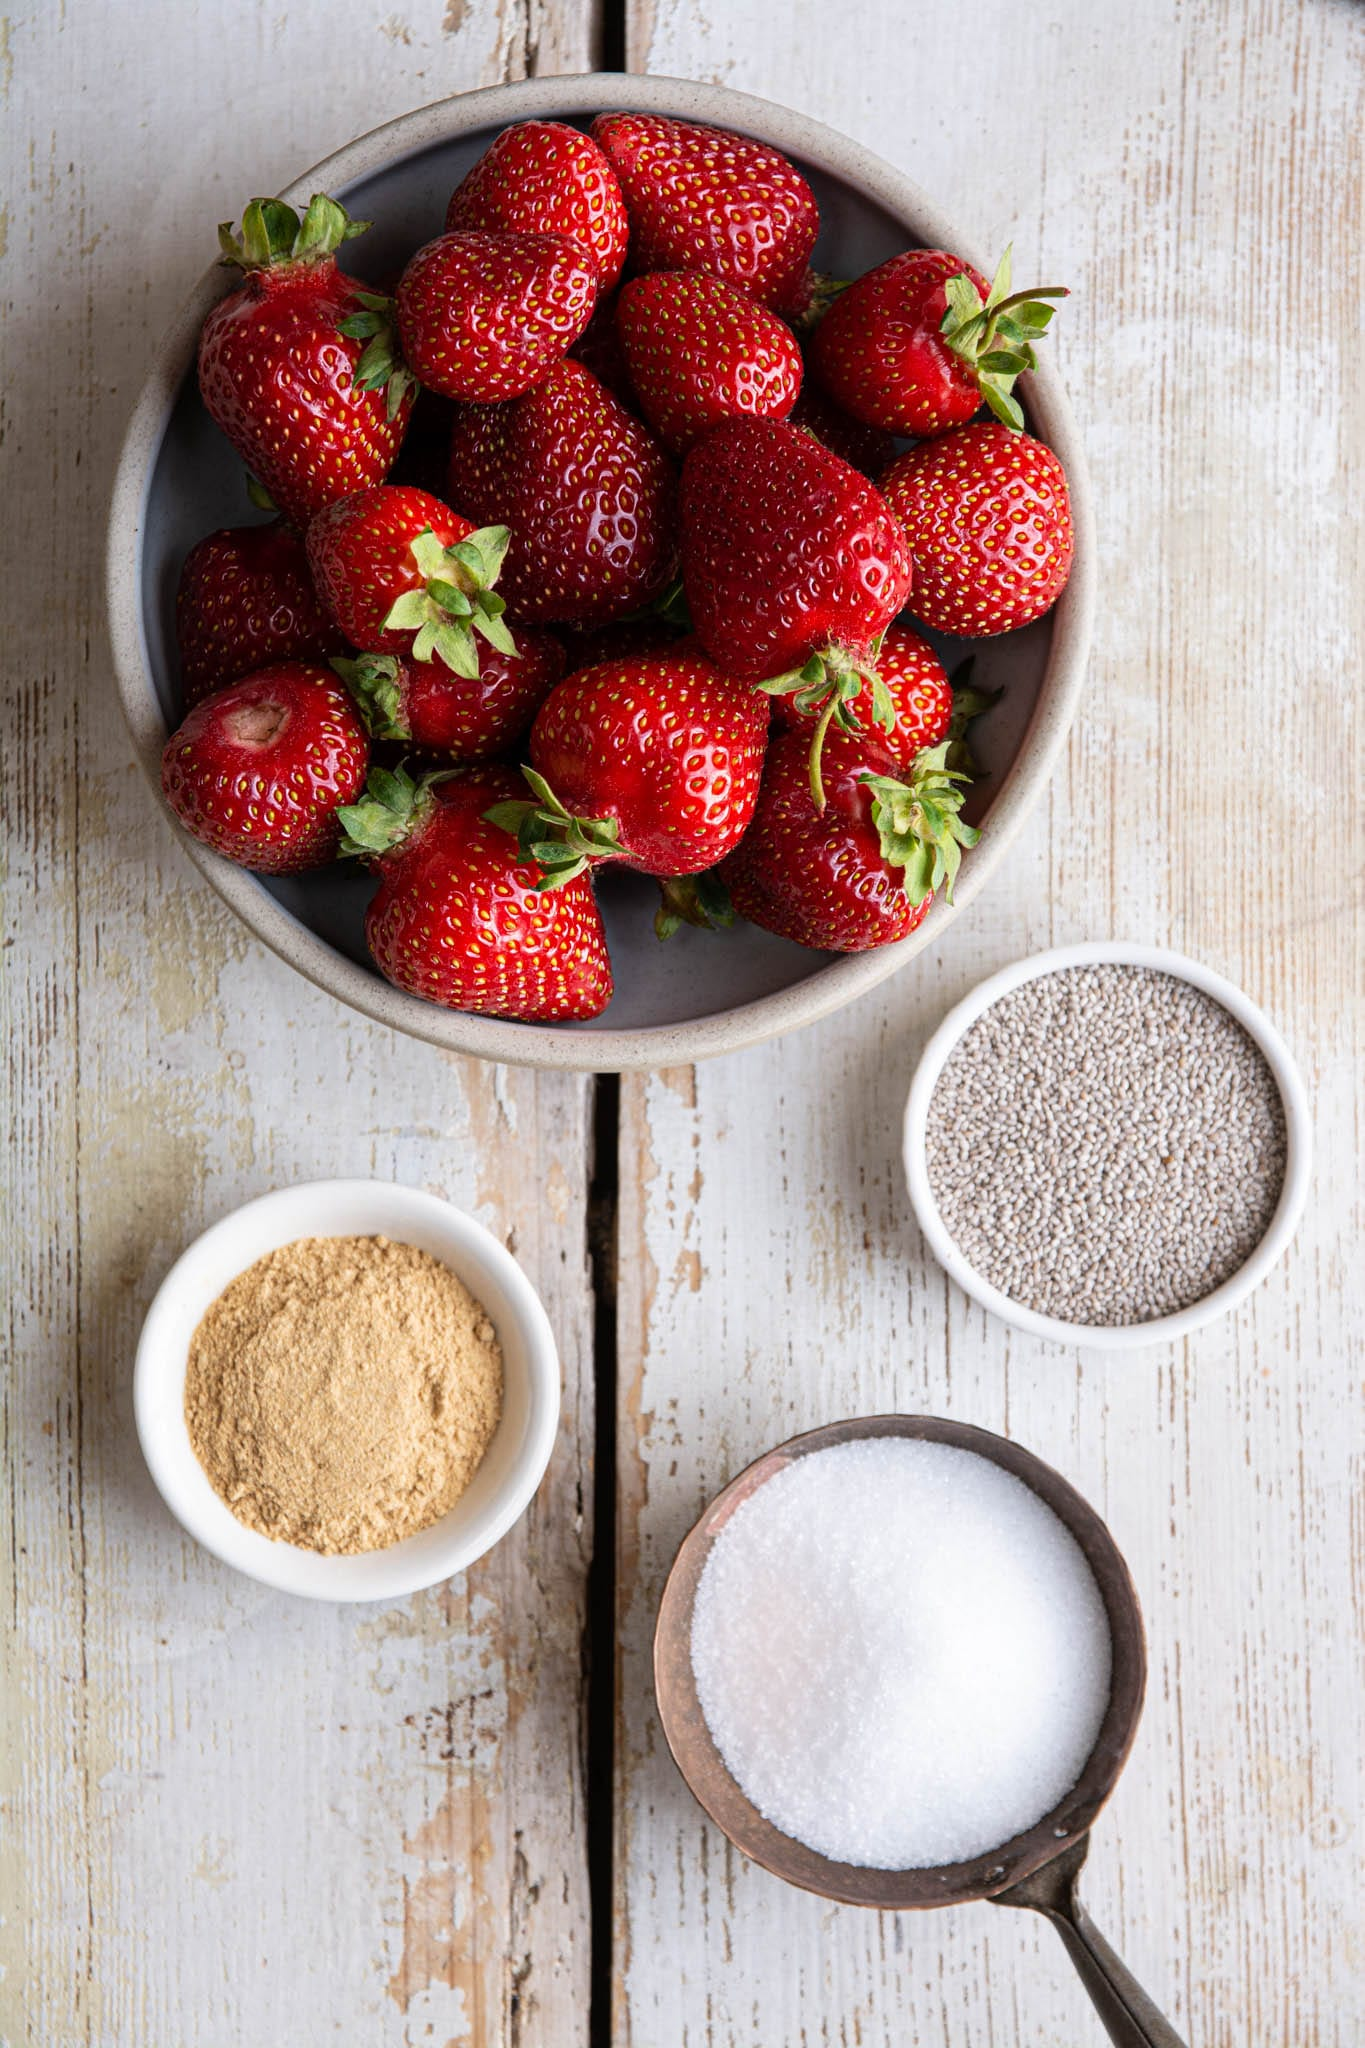 Let's make an easy strawberry sauce using fresh strawberries. All you need is a blender and 3-4 ingredients. This sauce is ideal for pancakes, crepes, waffles, cheesecake, pound cake, ice cream, and other desserts.